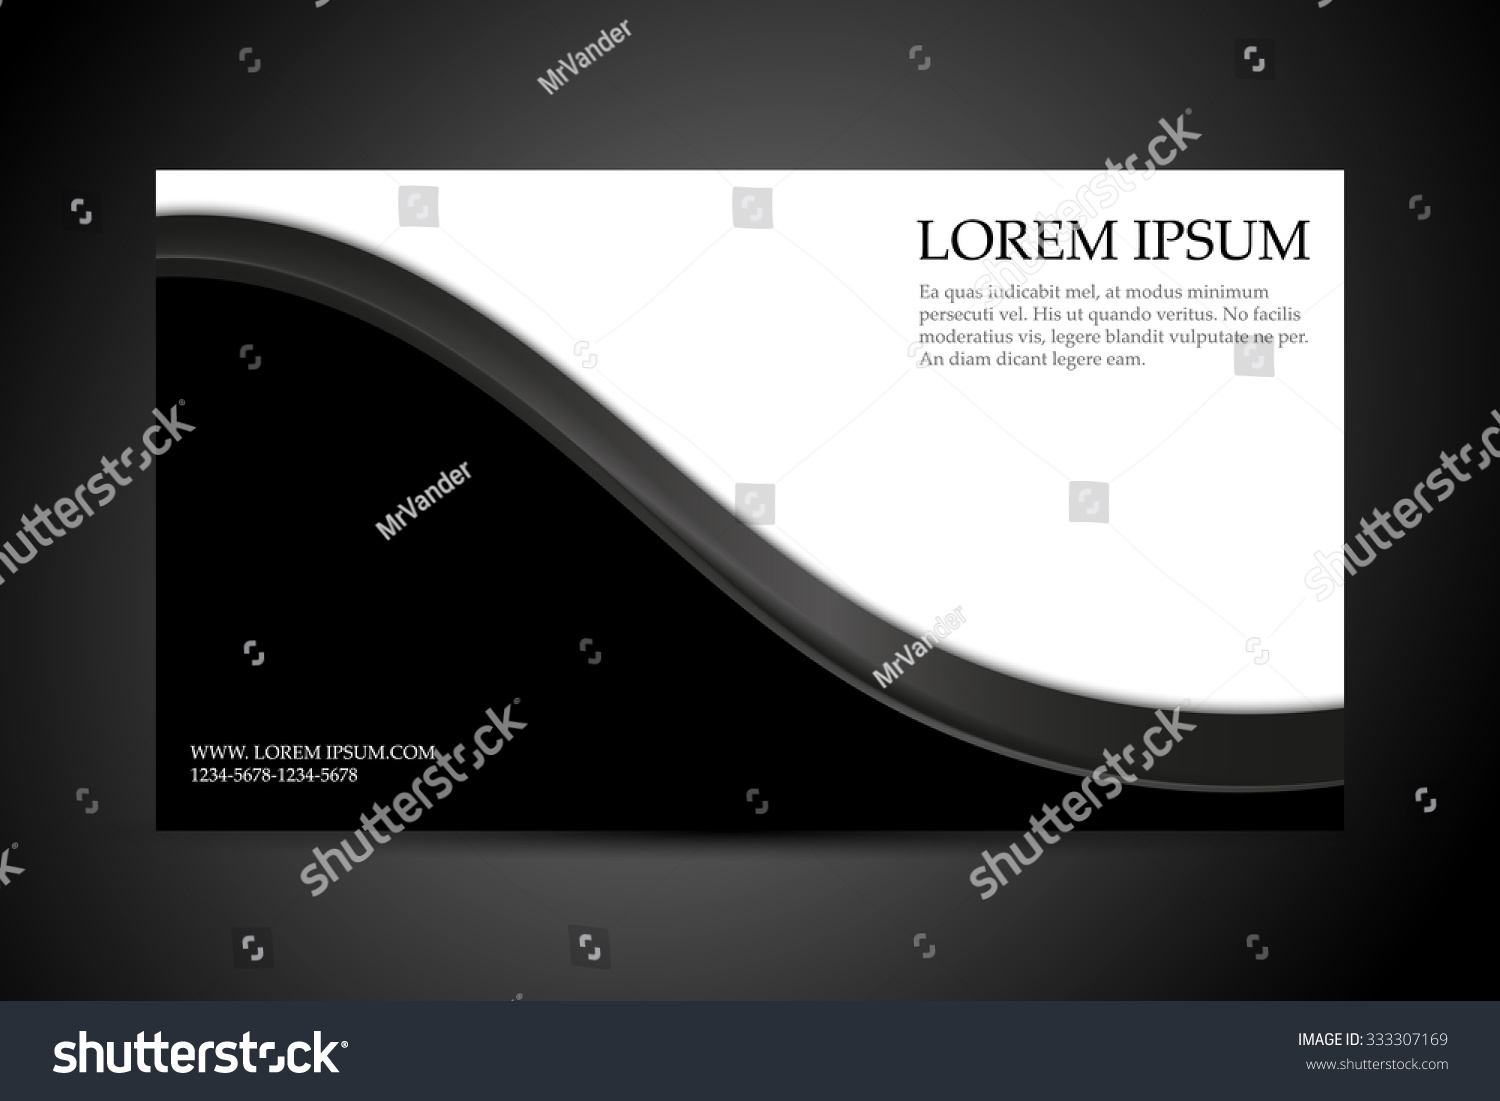 Business Card Template Black White Background Stock Vector 333307169 ...